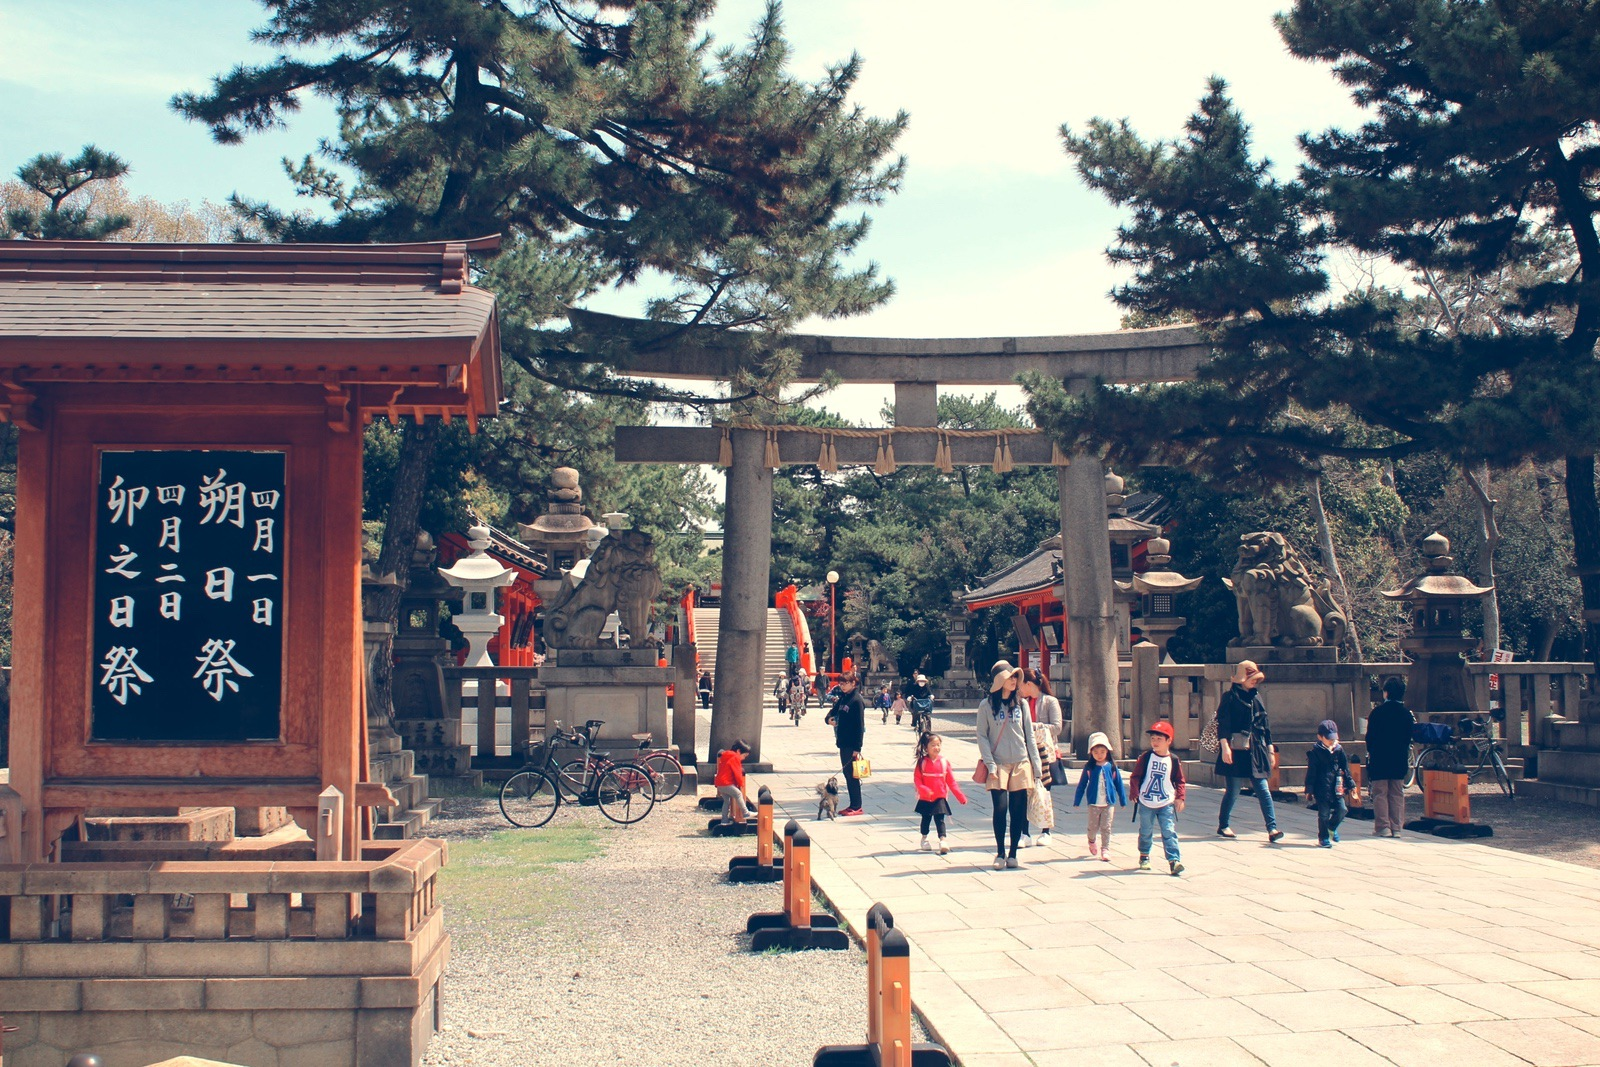 Sumiyoshi Taisha Shrine, Osaka, Japan - PearlMargaret.com